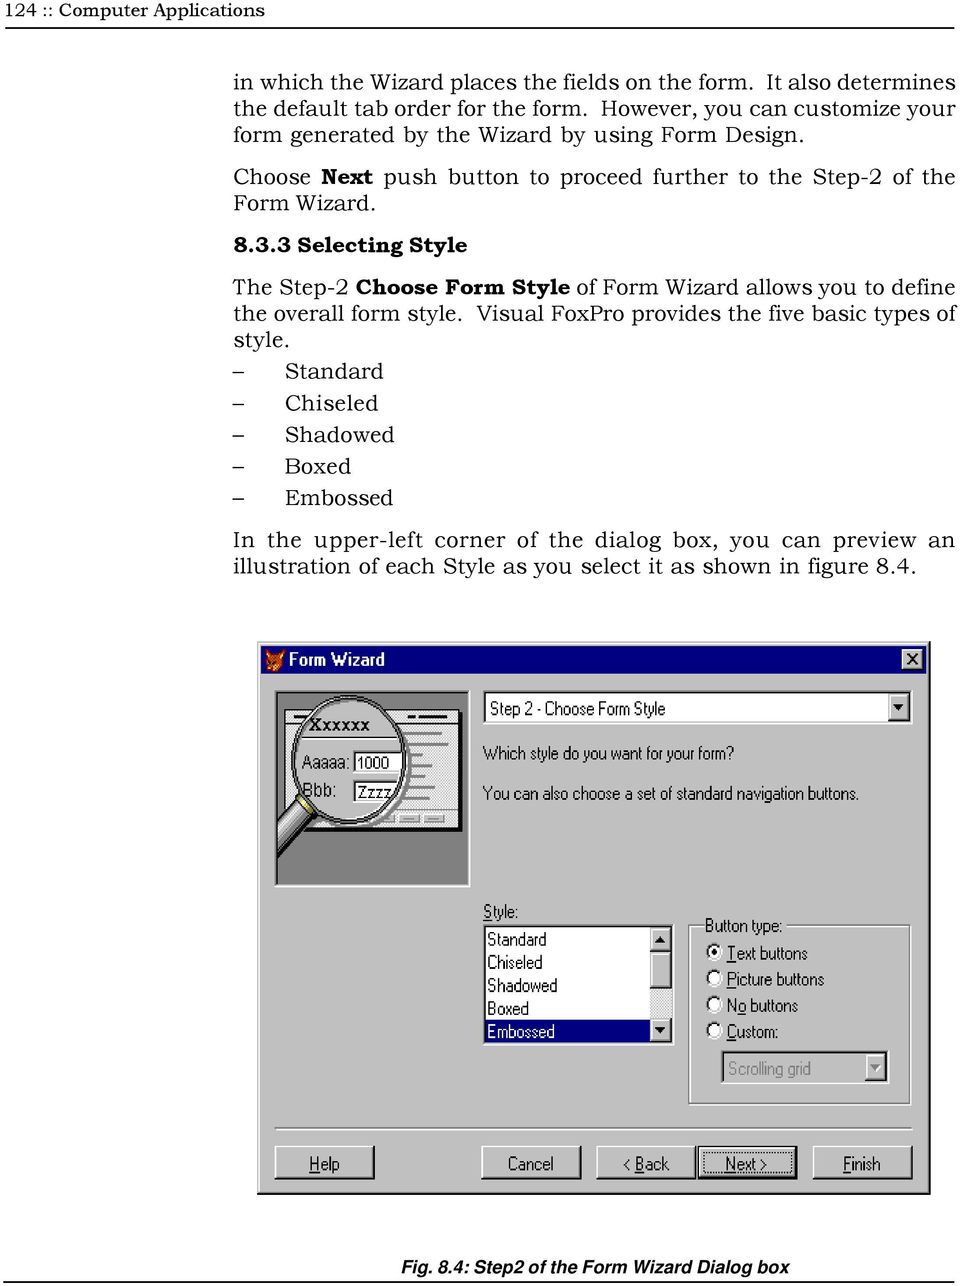 3 Selecting Style The Step-2 Choose Form Style of Form Wizard allows you to define the overall form style. Visual FoxPro provides the five basic types of style.